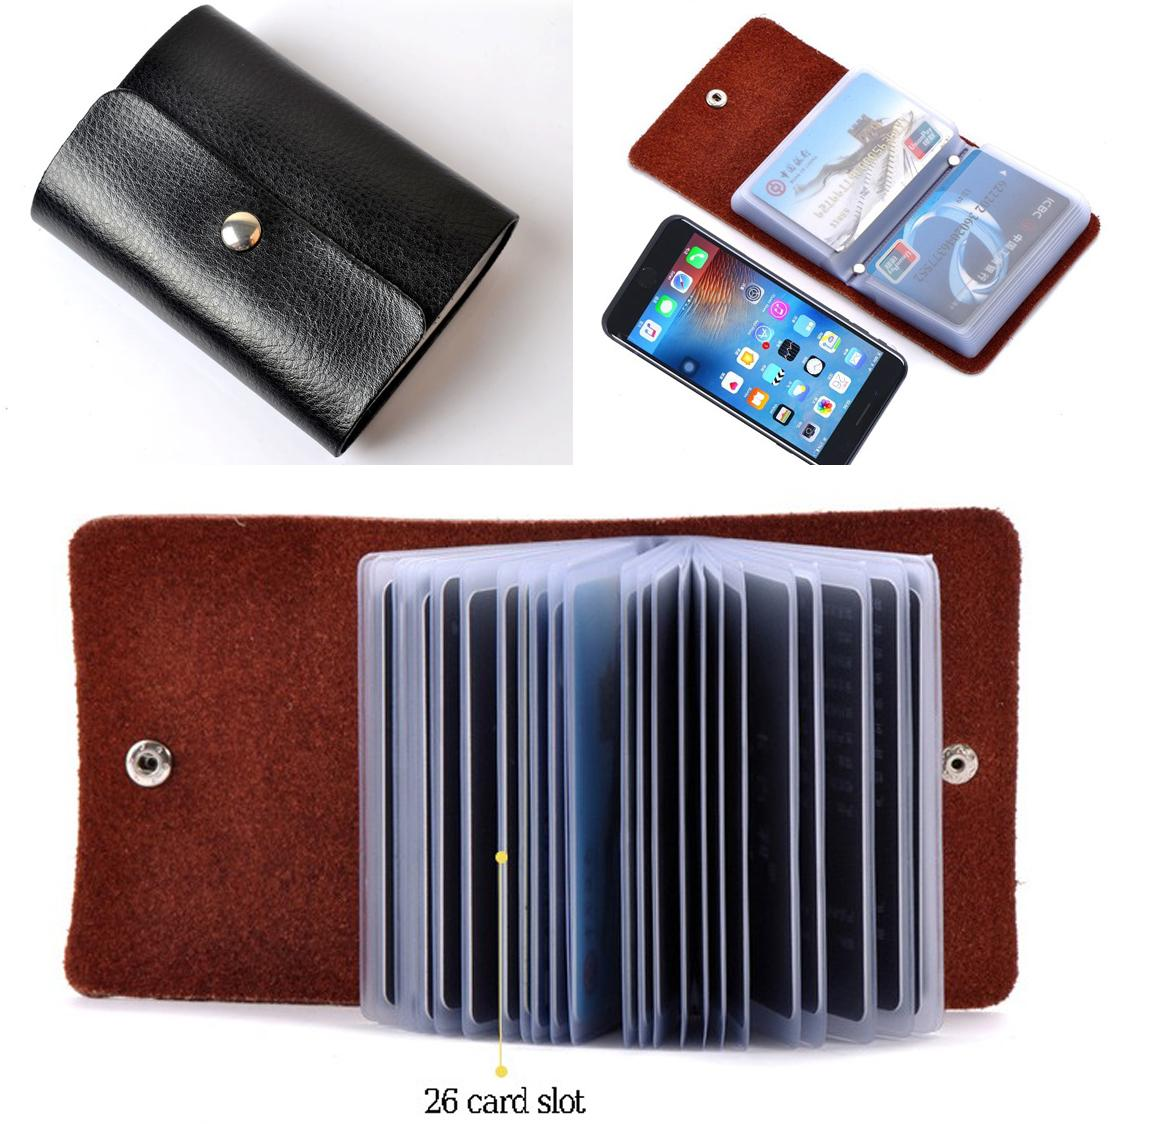 Unisex Card Holders For Sale Unisex Travel Card Holders Online